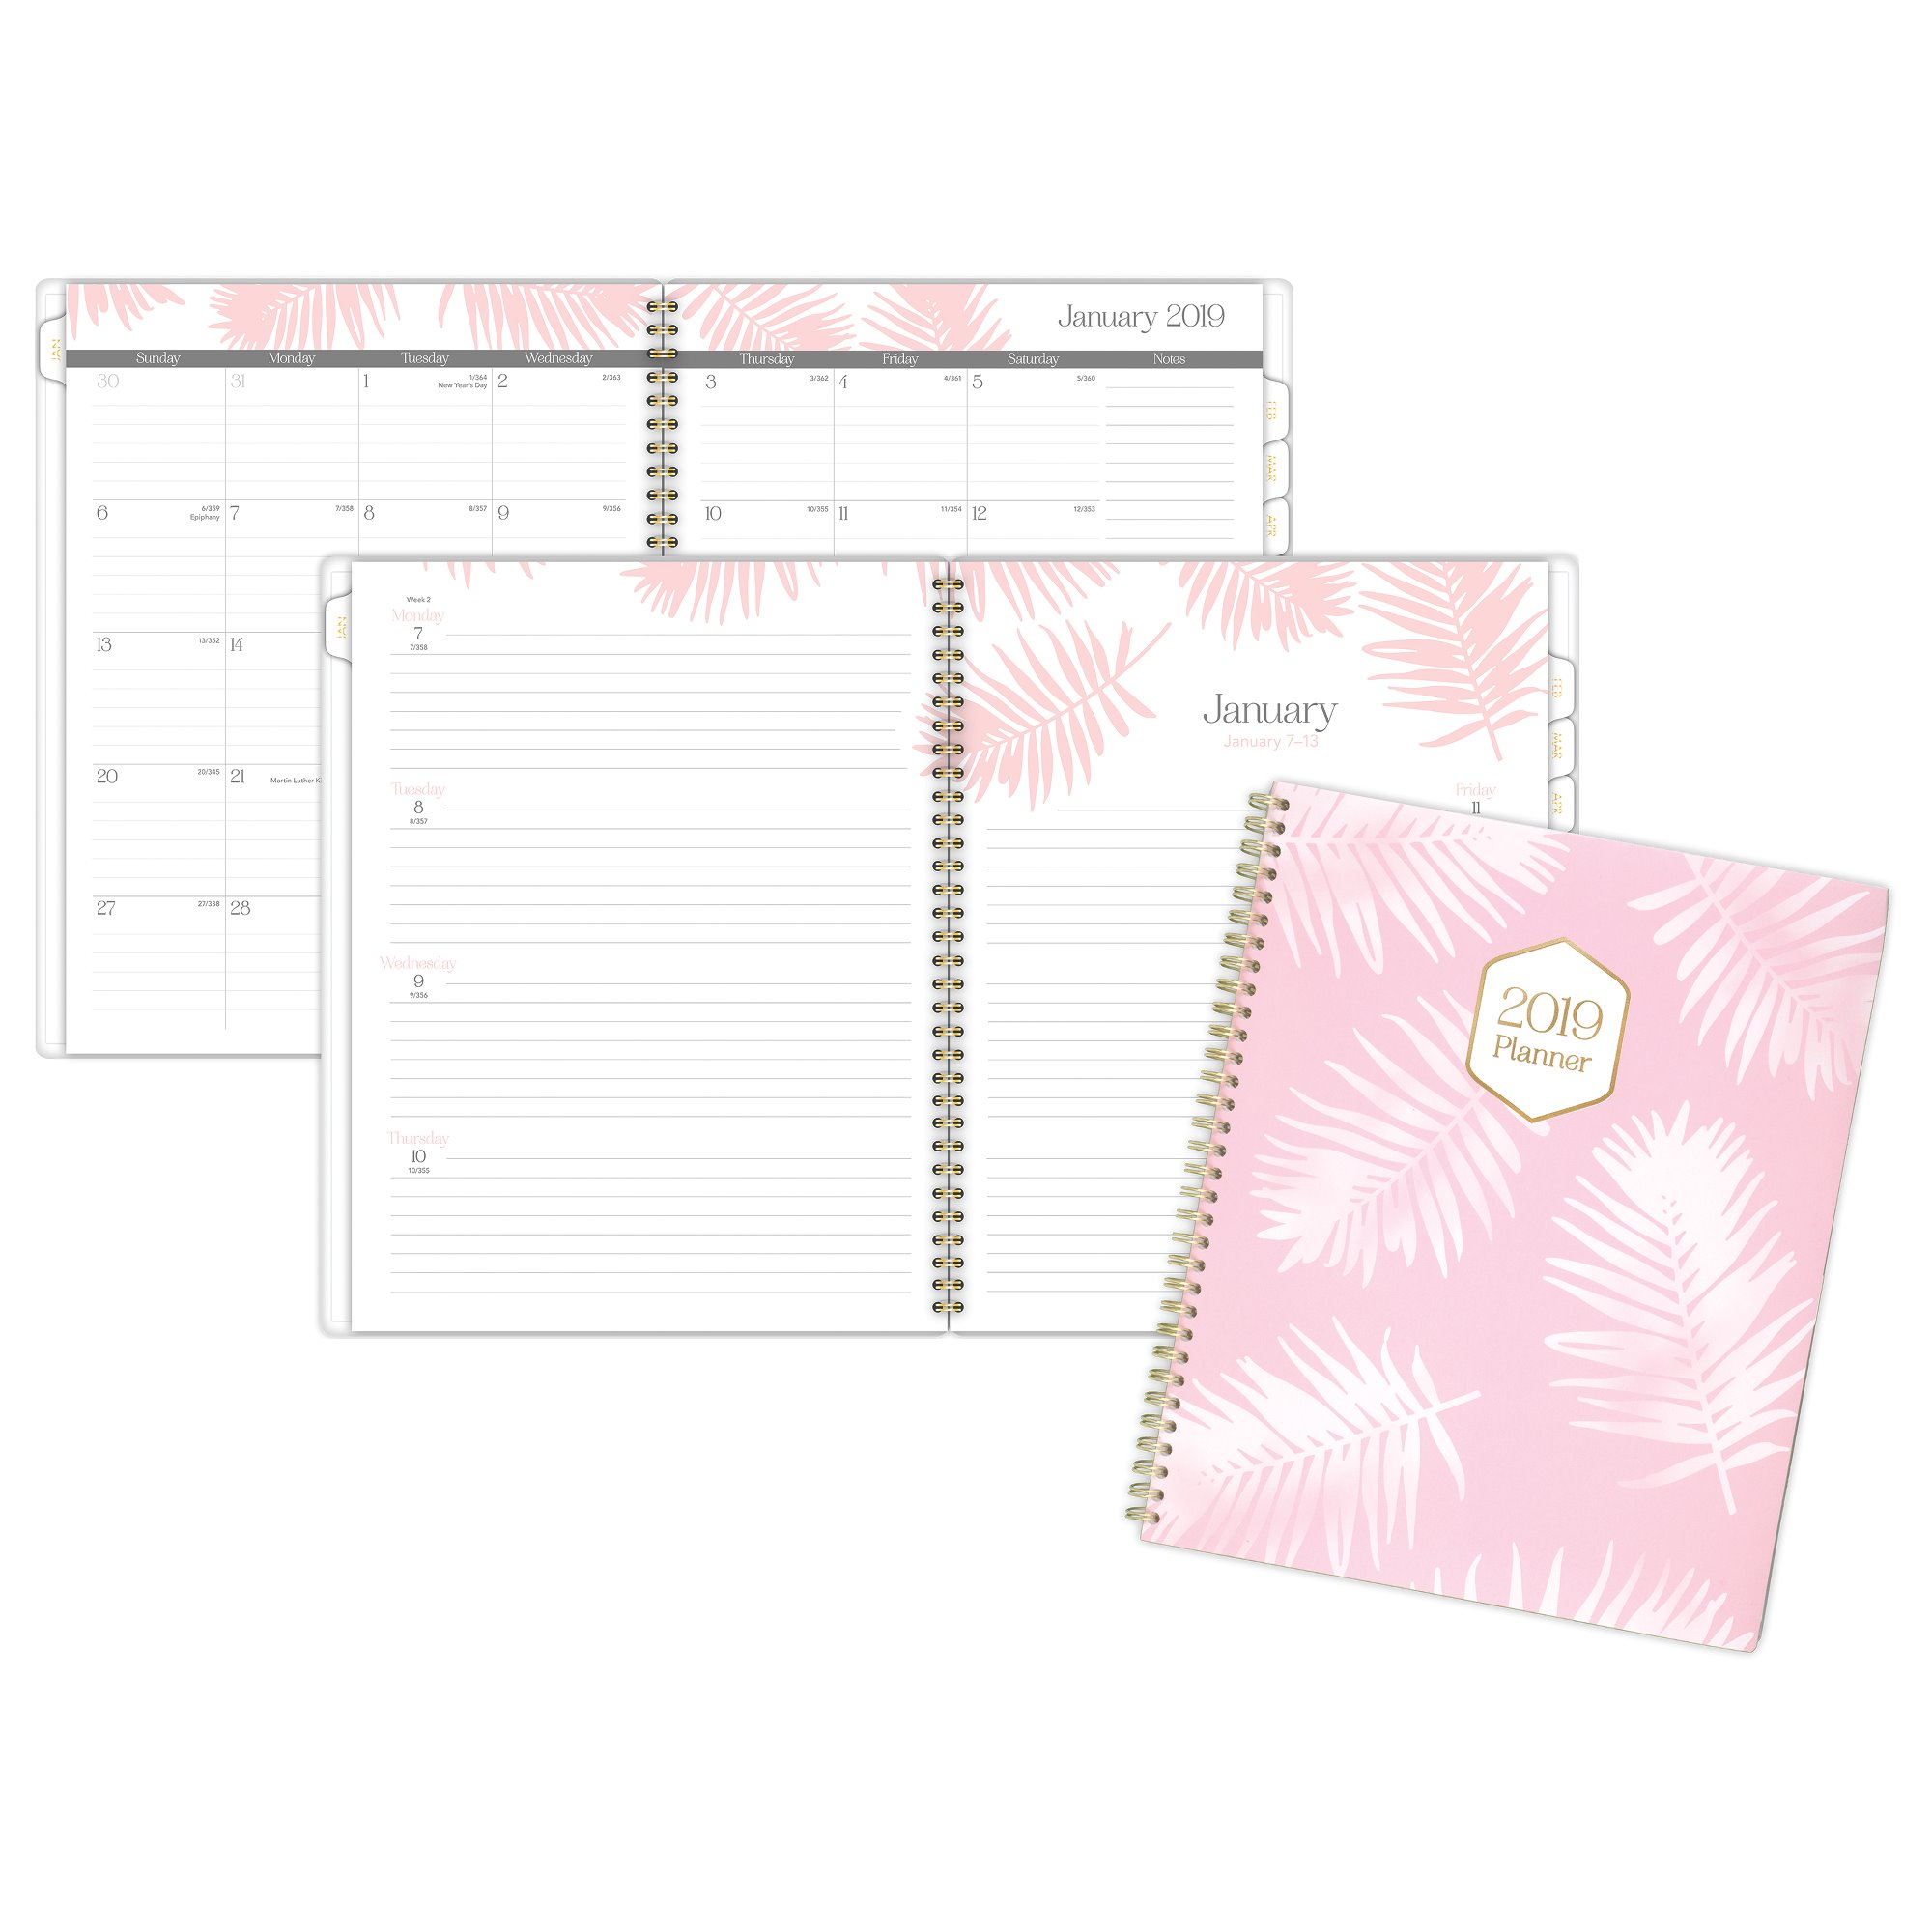 Cambridge Beverly Weekly-Monthly Planner - Planners & Appointment Books